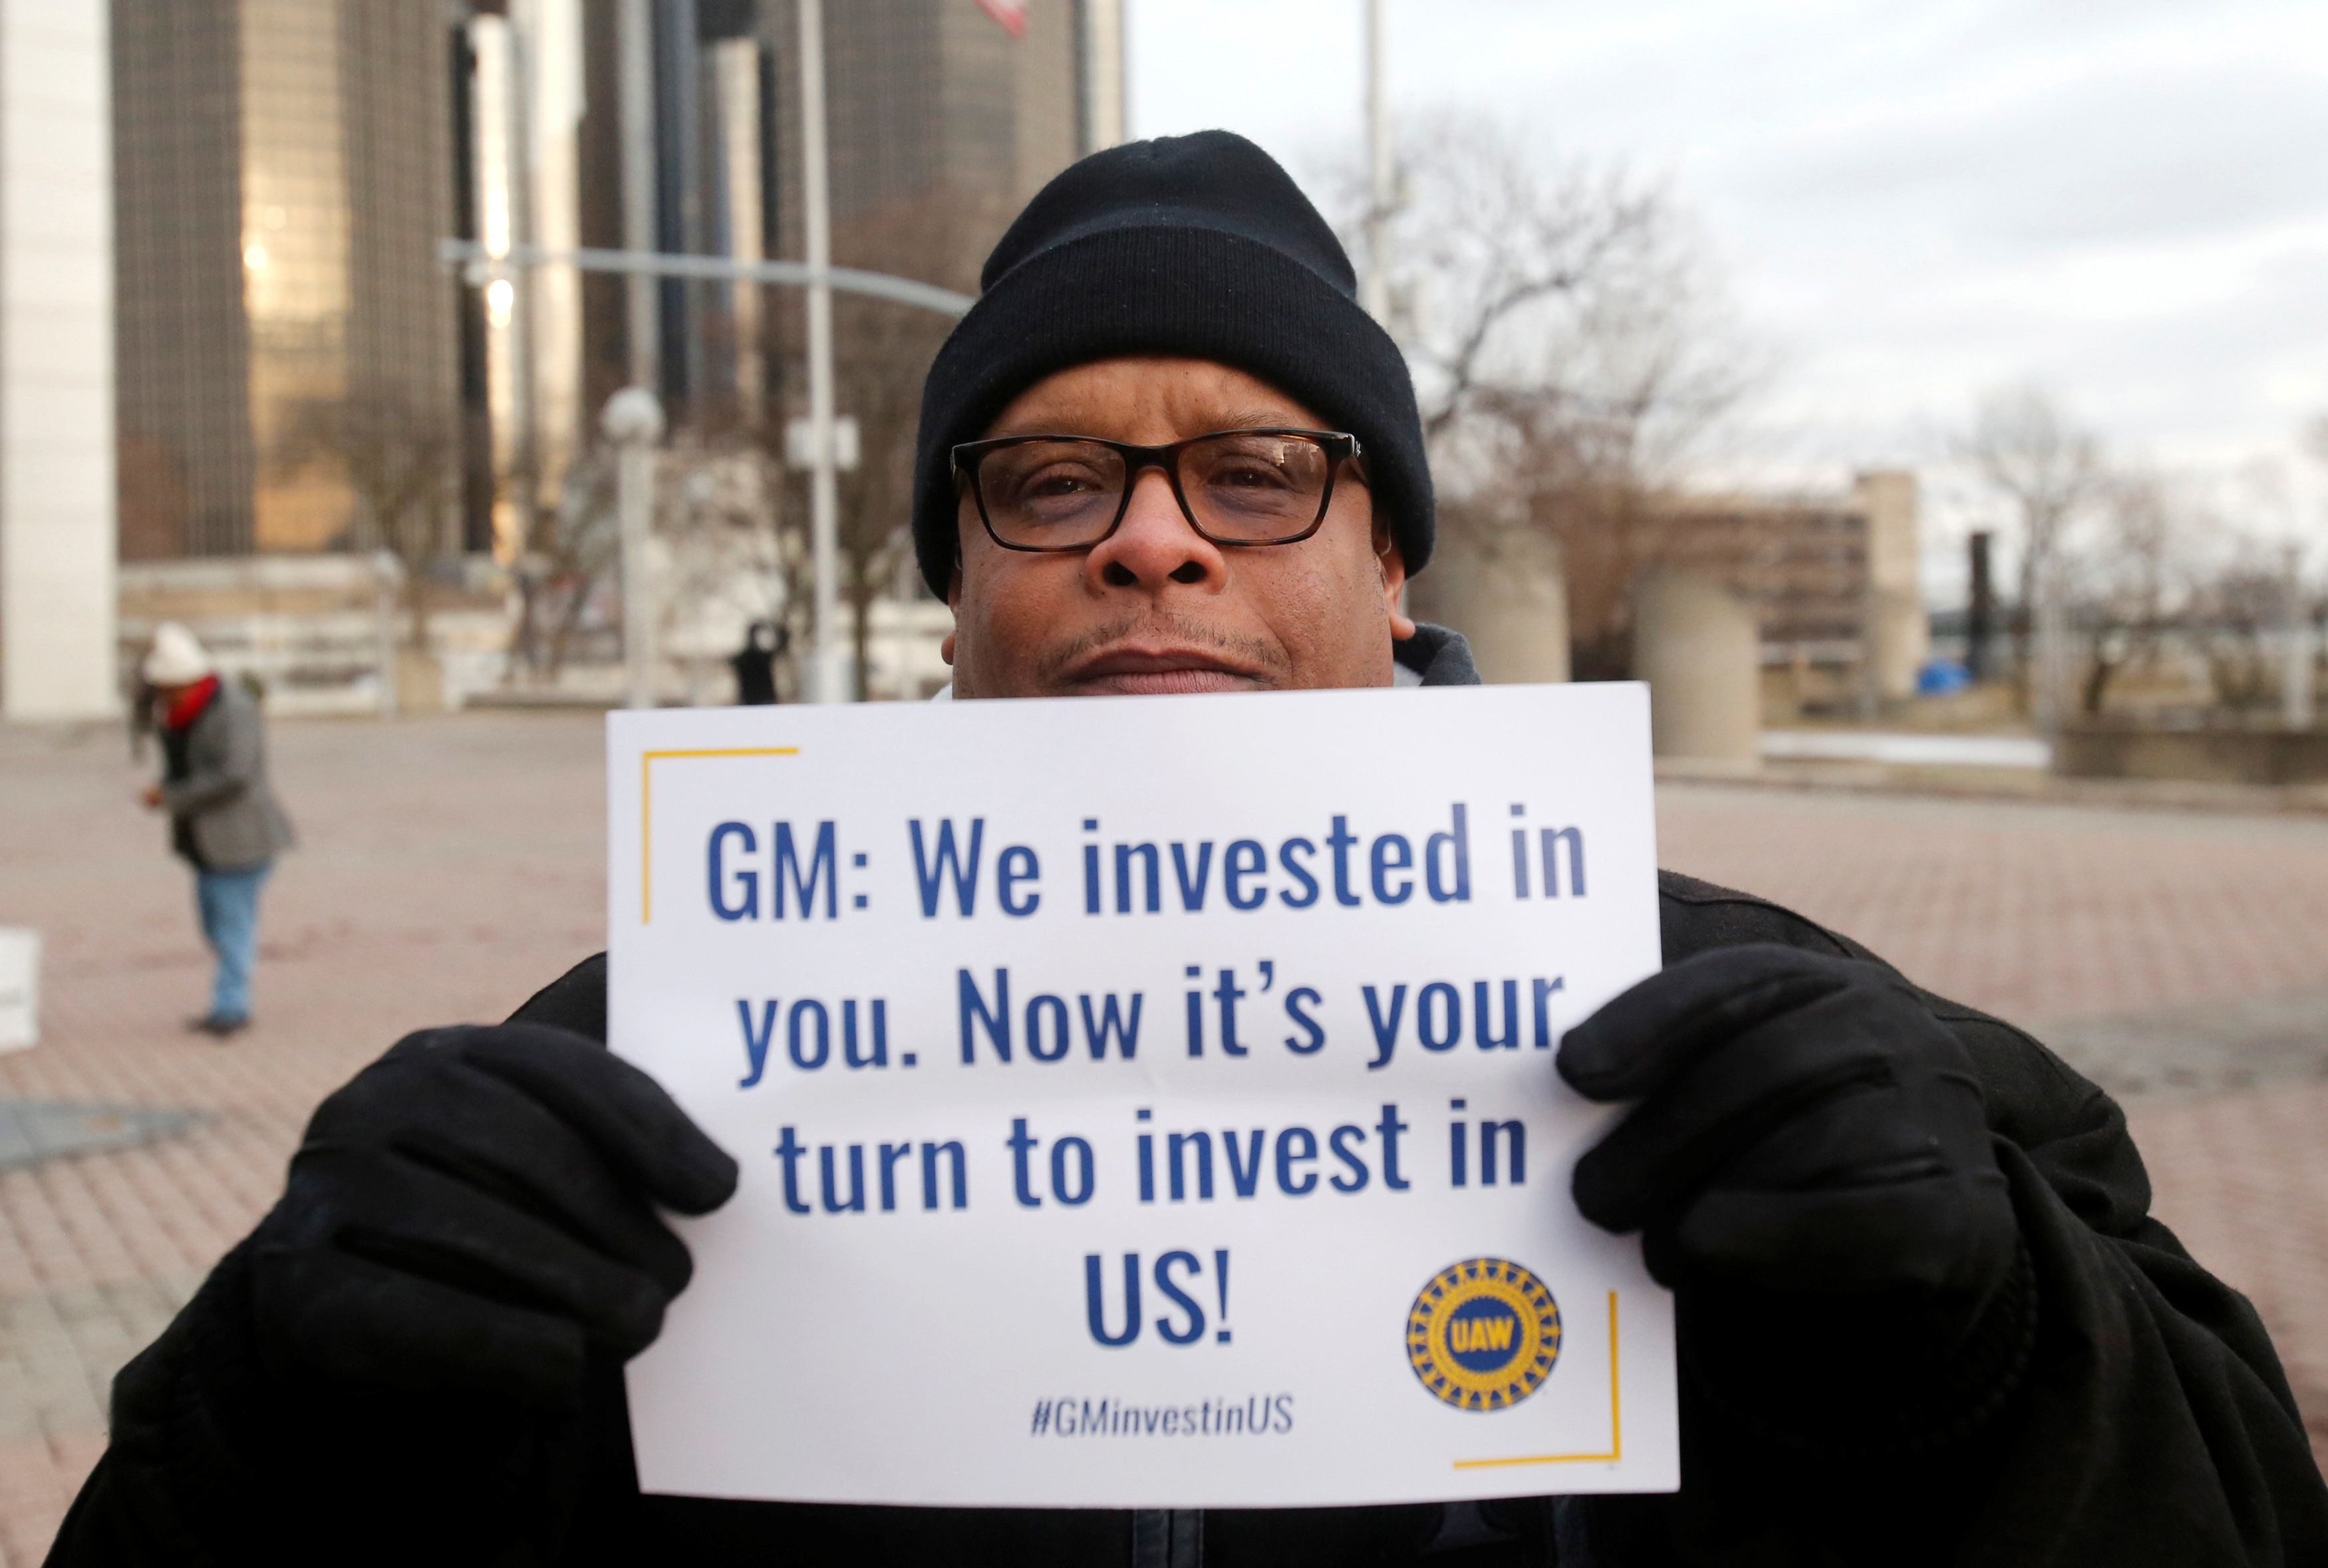 General Motors Detroit/Hamtramck assembly worker Henry Fleming holds his protest sign before the start of a rally to protest GM's planned plant closures in Detroit, Michigan, U.S. January 18, 2019.   REUTERS/Rebecca Cook